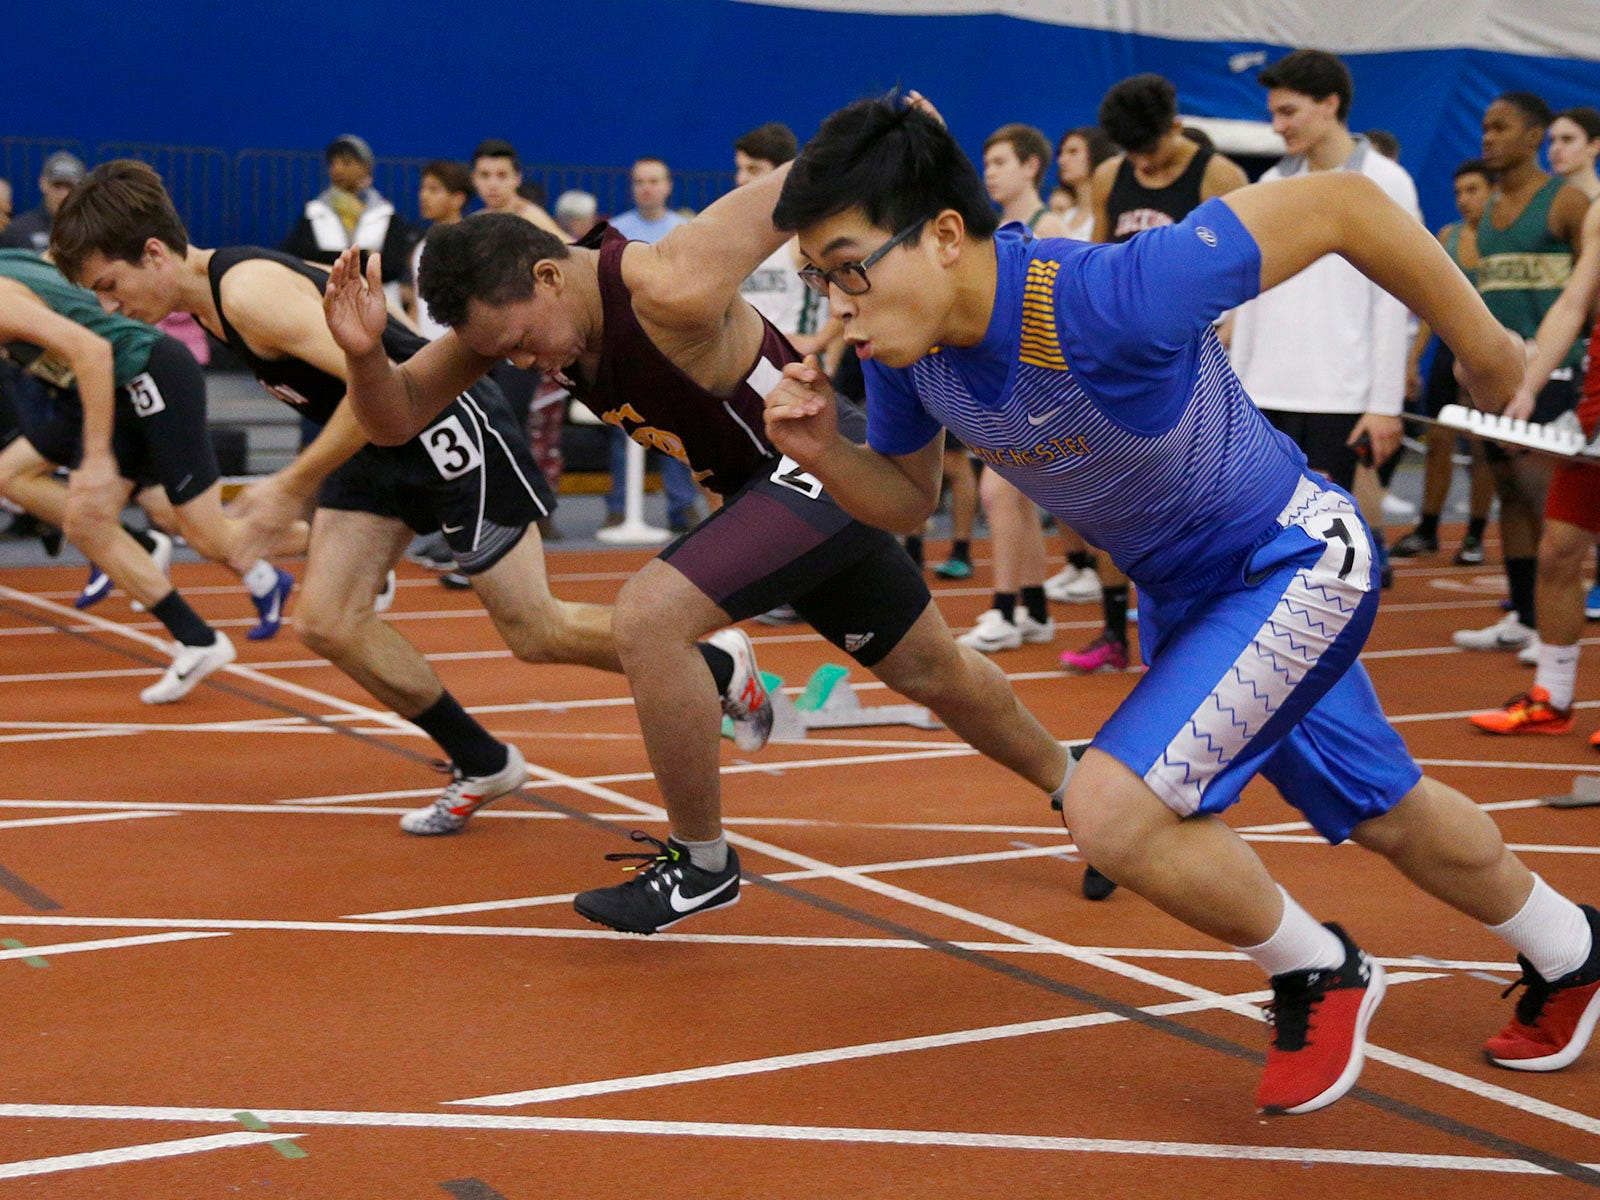 Runner jump off the blocks at the start of the 55m sprint during the Ocean County Indoor Track Championships at the Bennett Indoor Complex in Toms River Wednesday, January 9th, 2019.